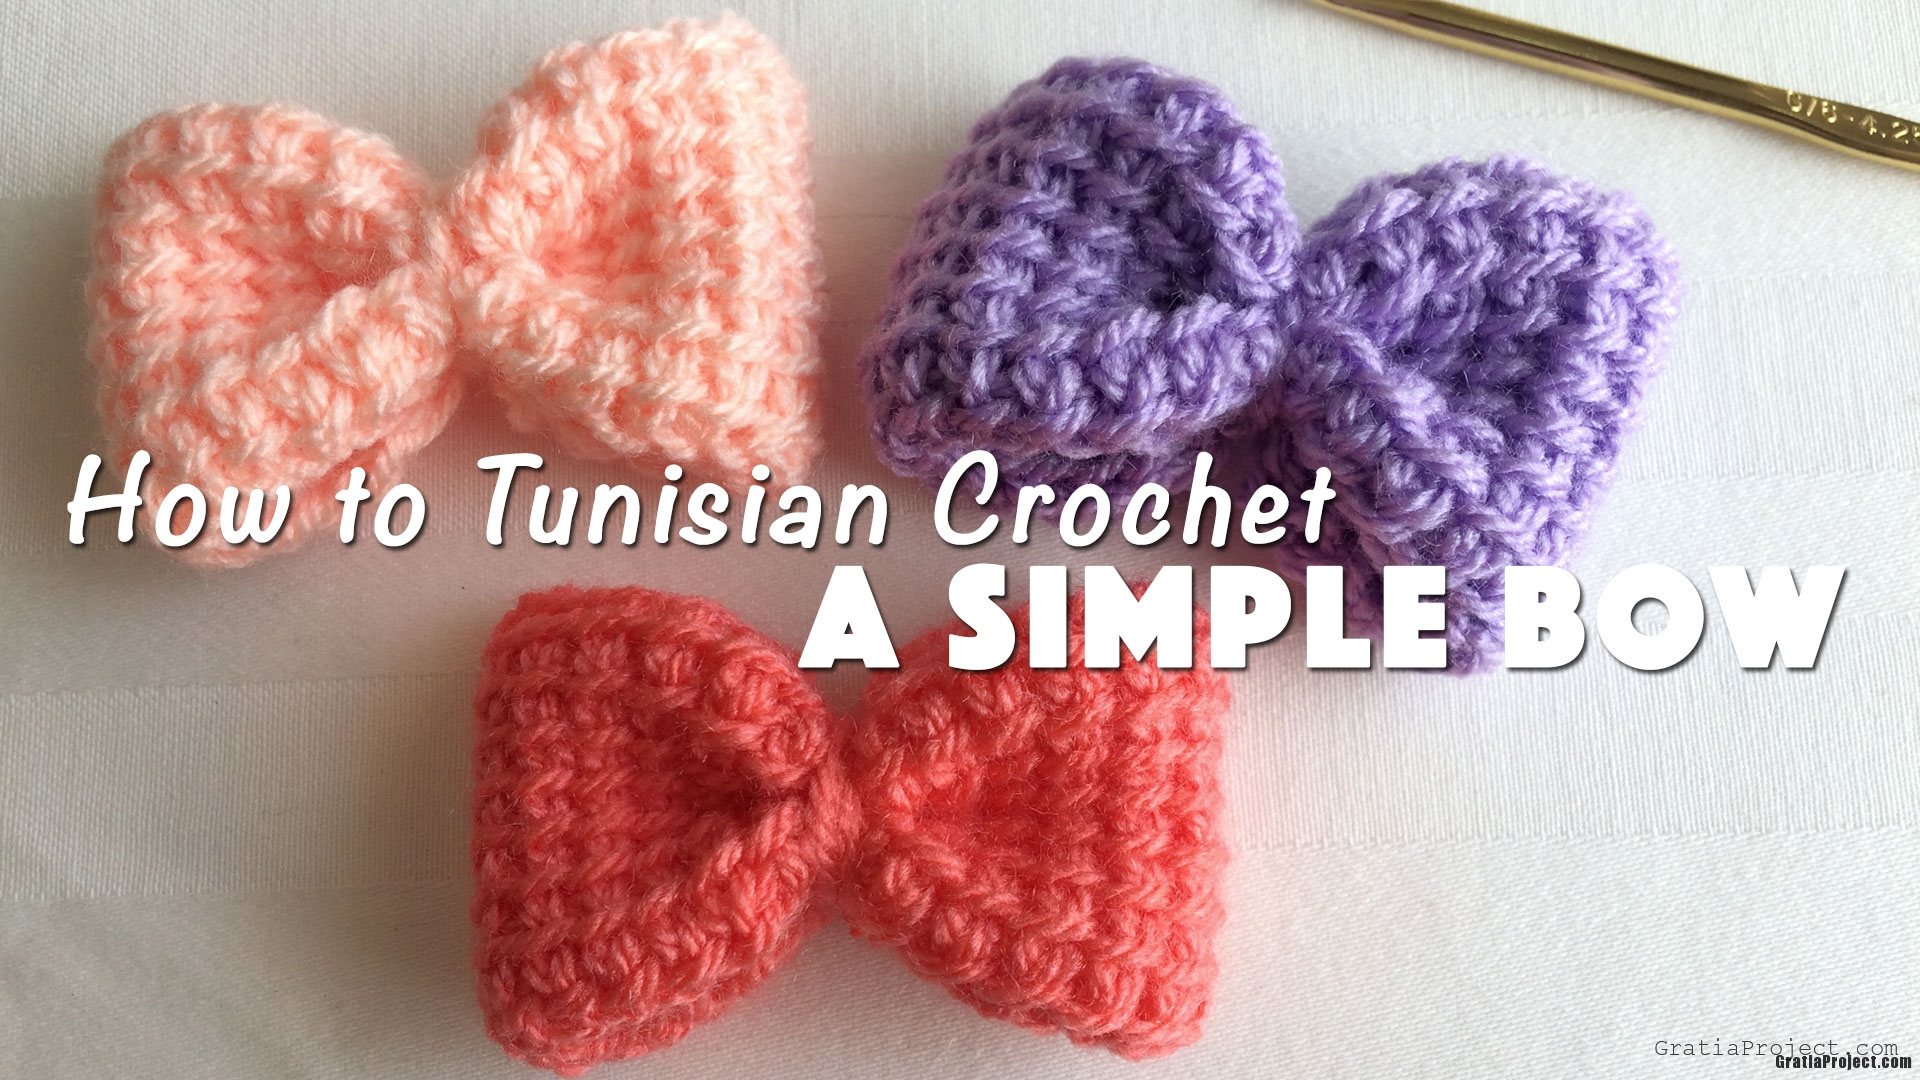 how-to-tunisian-crochet-a-simple-bow